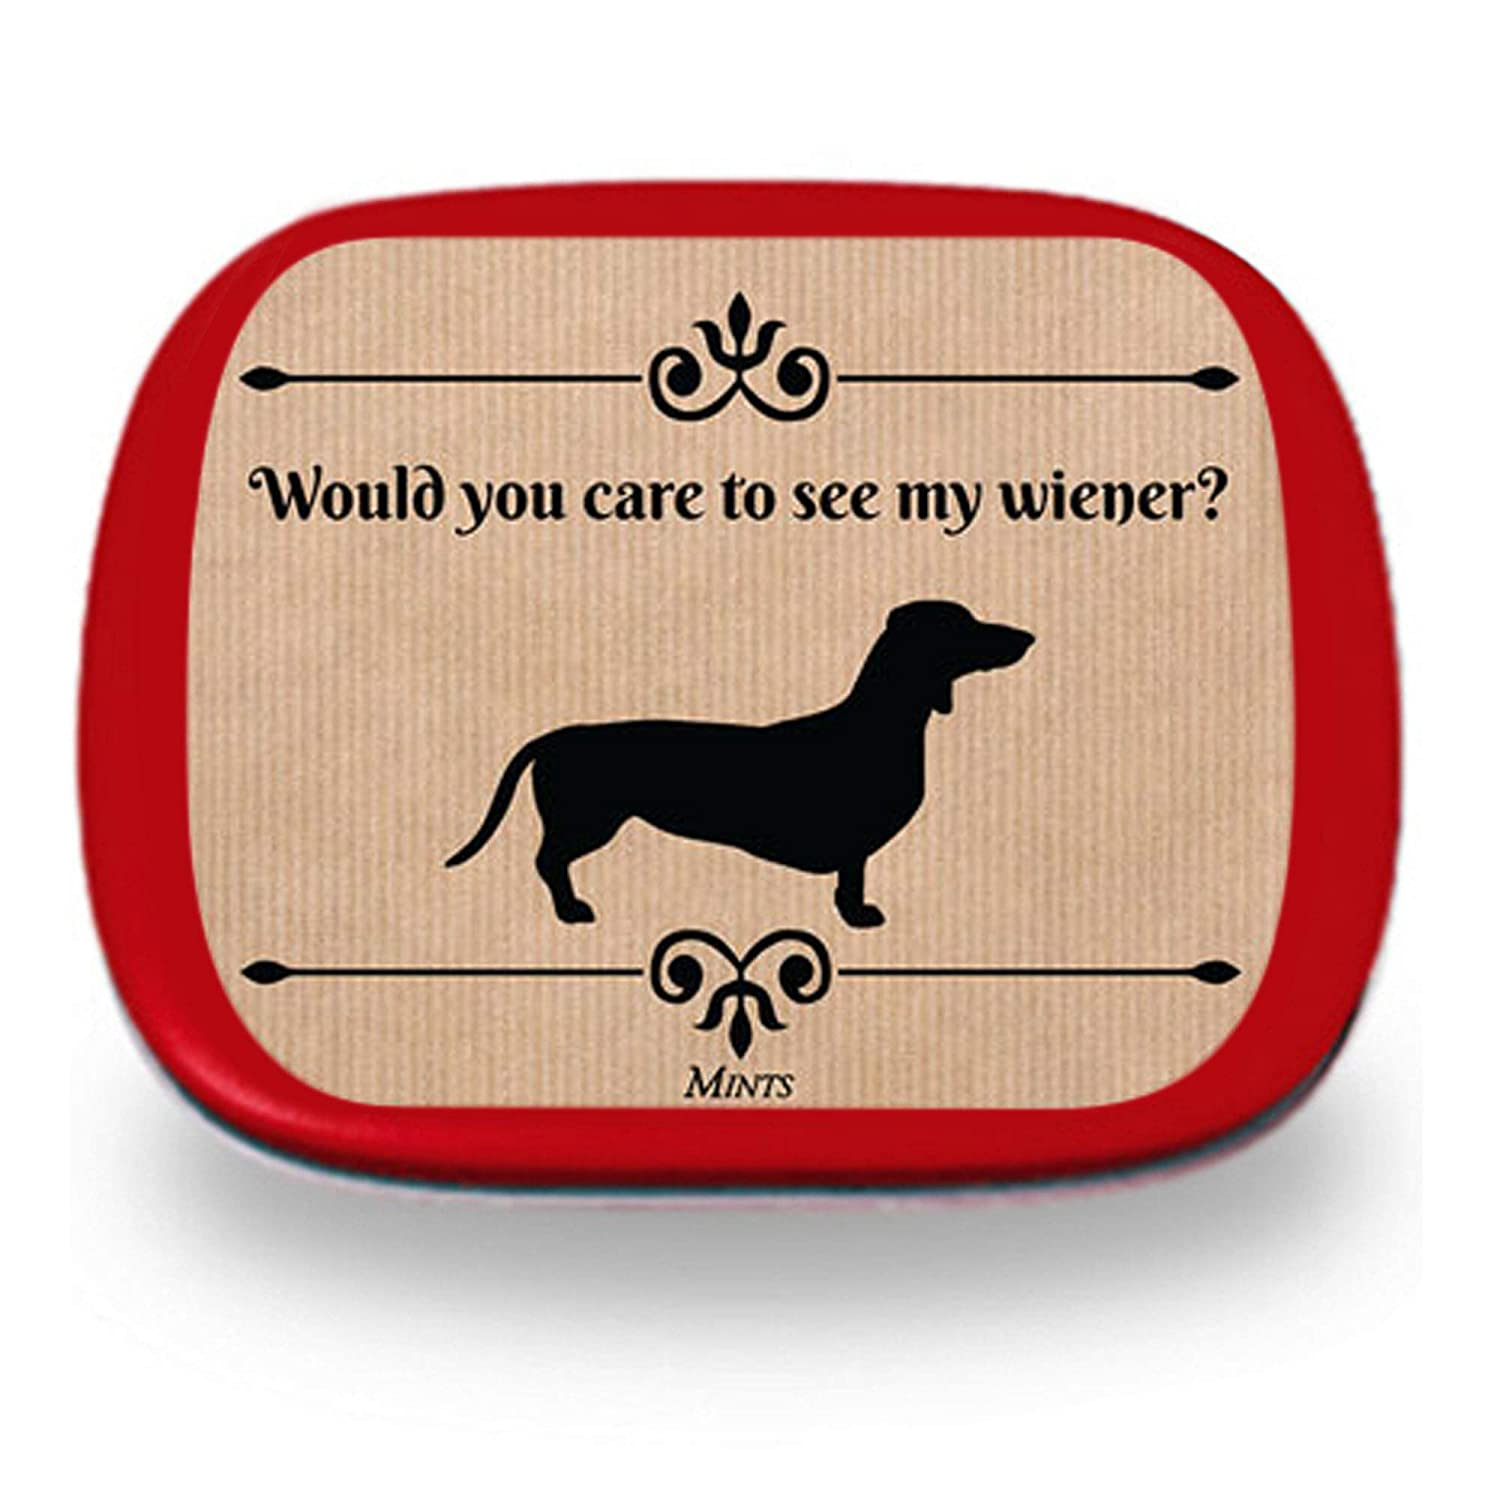 Would You Like To See My Wiener Mints - Funny Dachshund Gift - Stocking Stuffers for Men - Peppermint - Wiener Dog